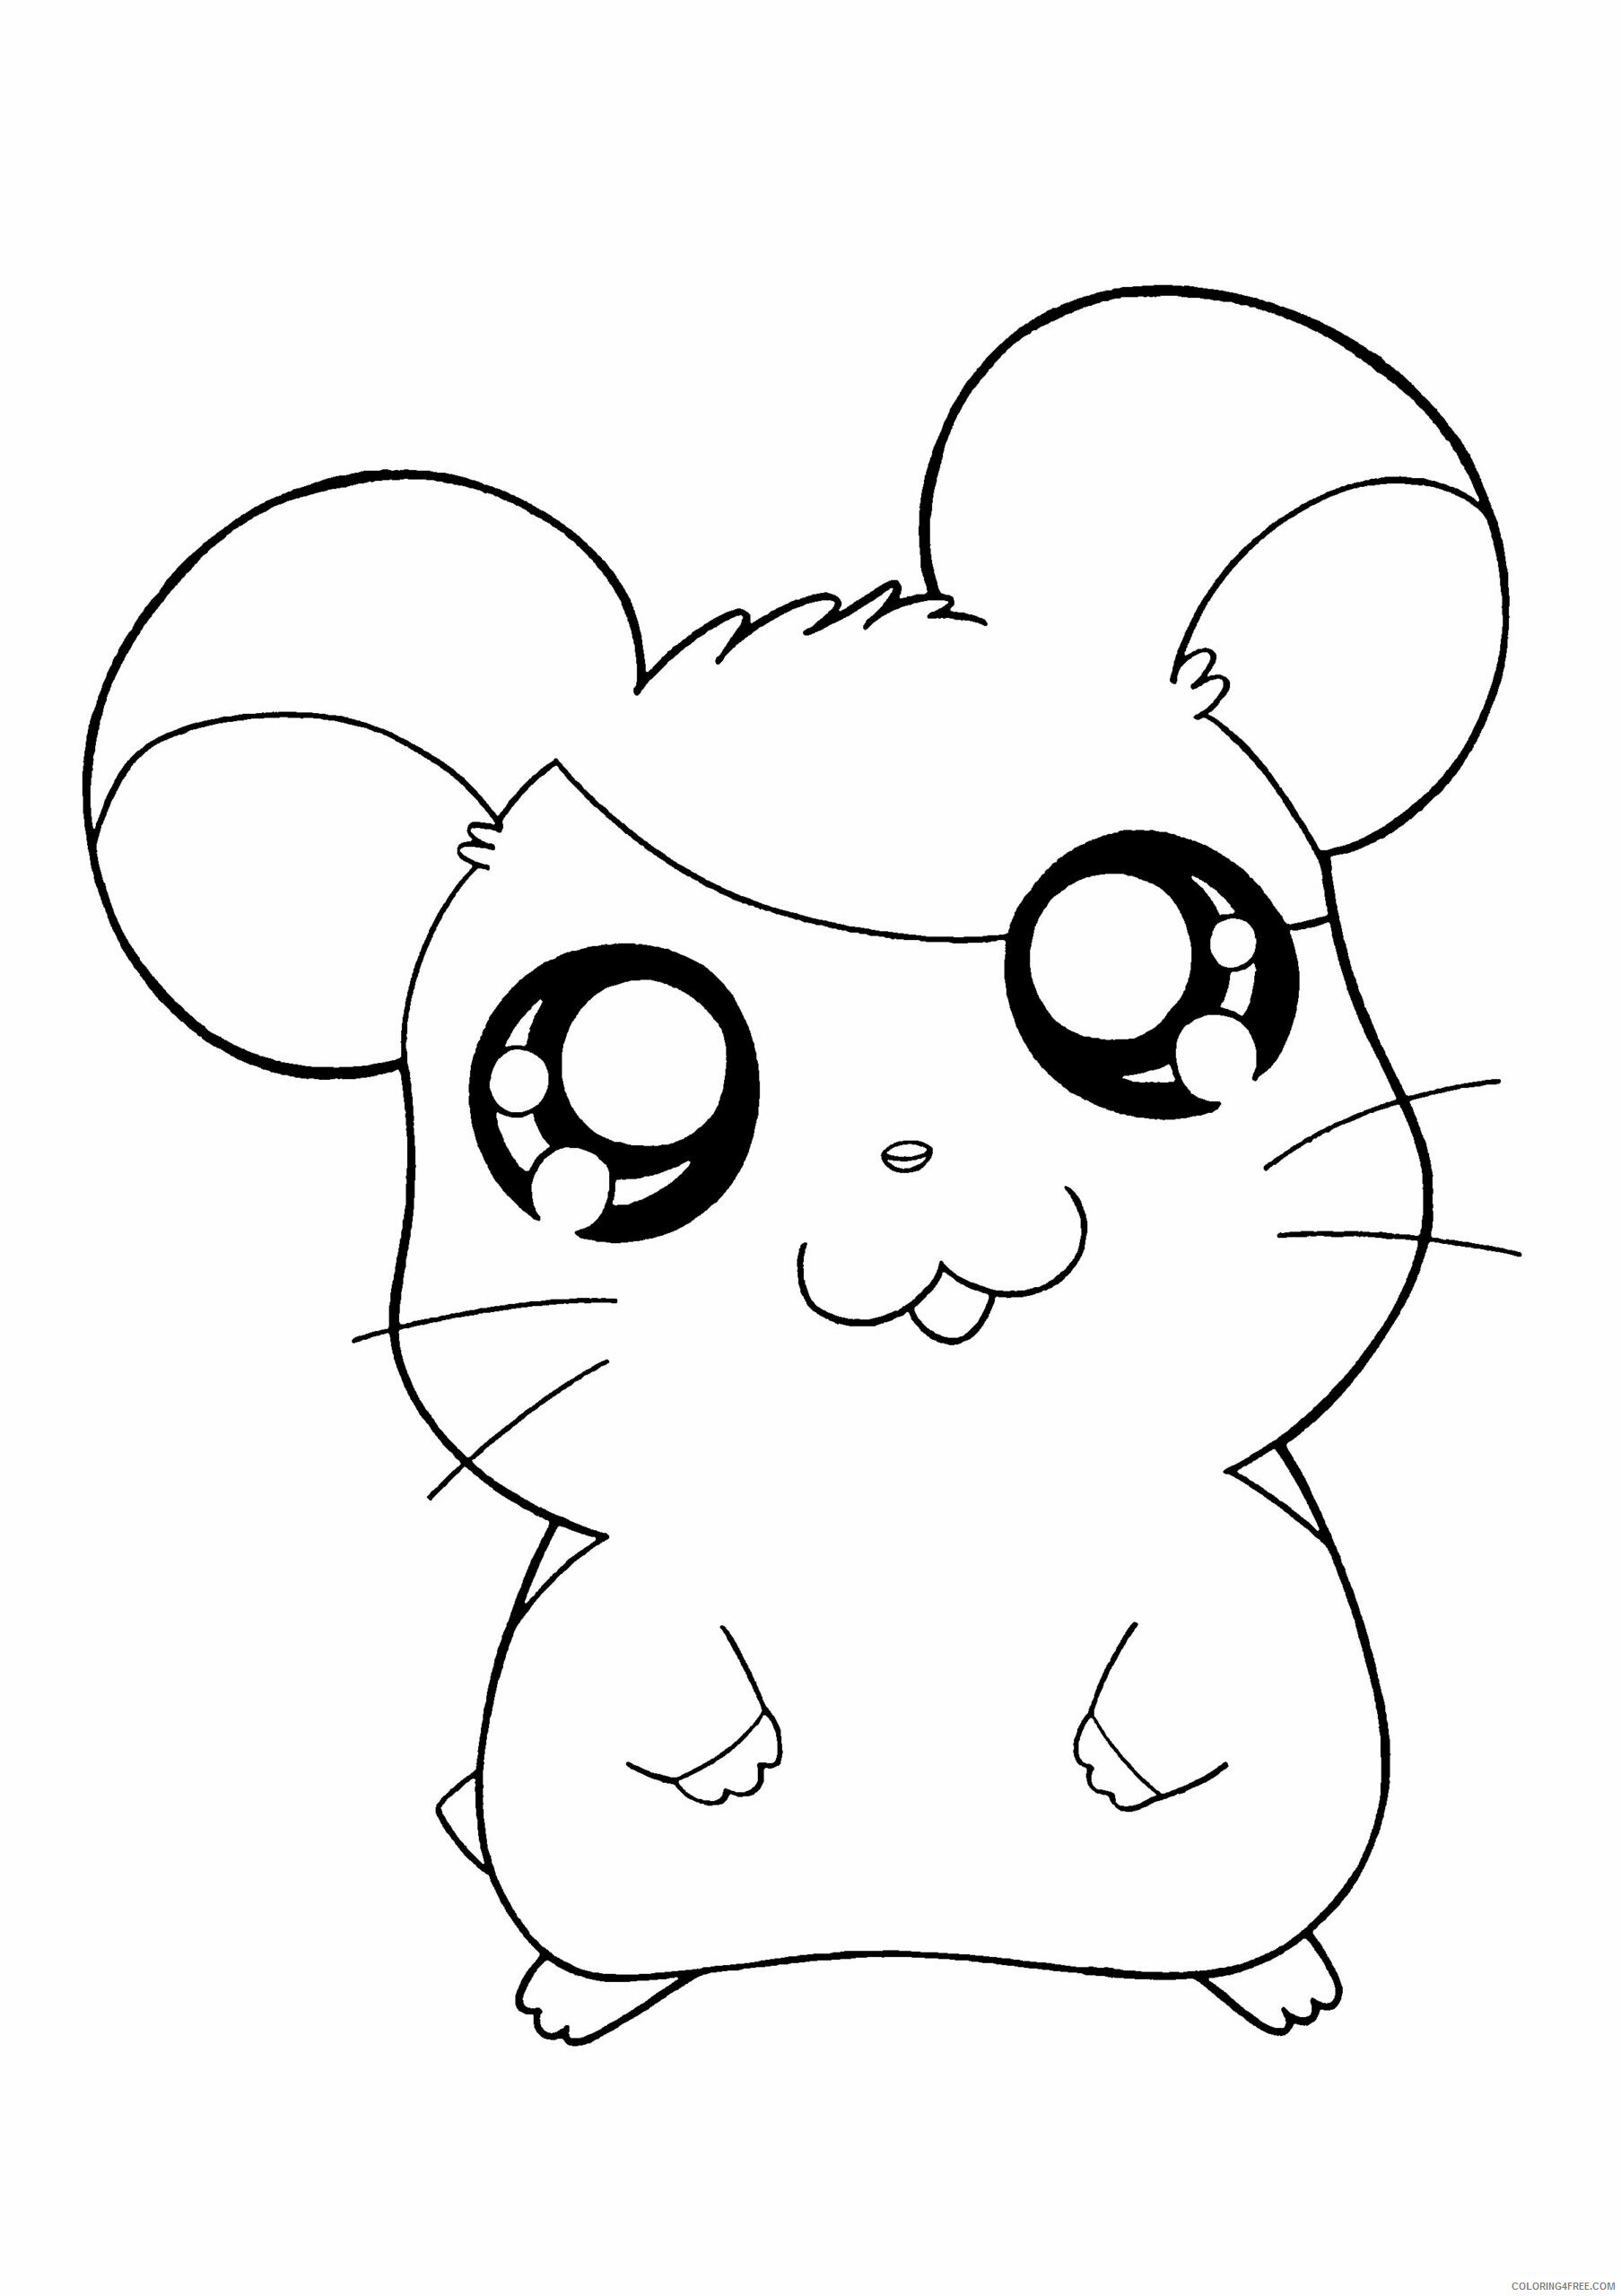 Az Hamtaro Coloring Pages Printable Sheets Hamtaro Pictures High Quality 2021 a 4547 Coloring4free